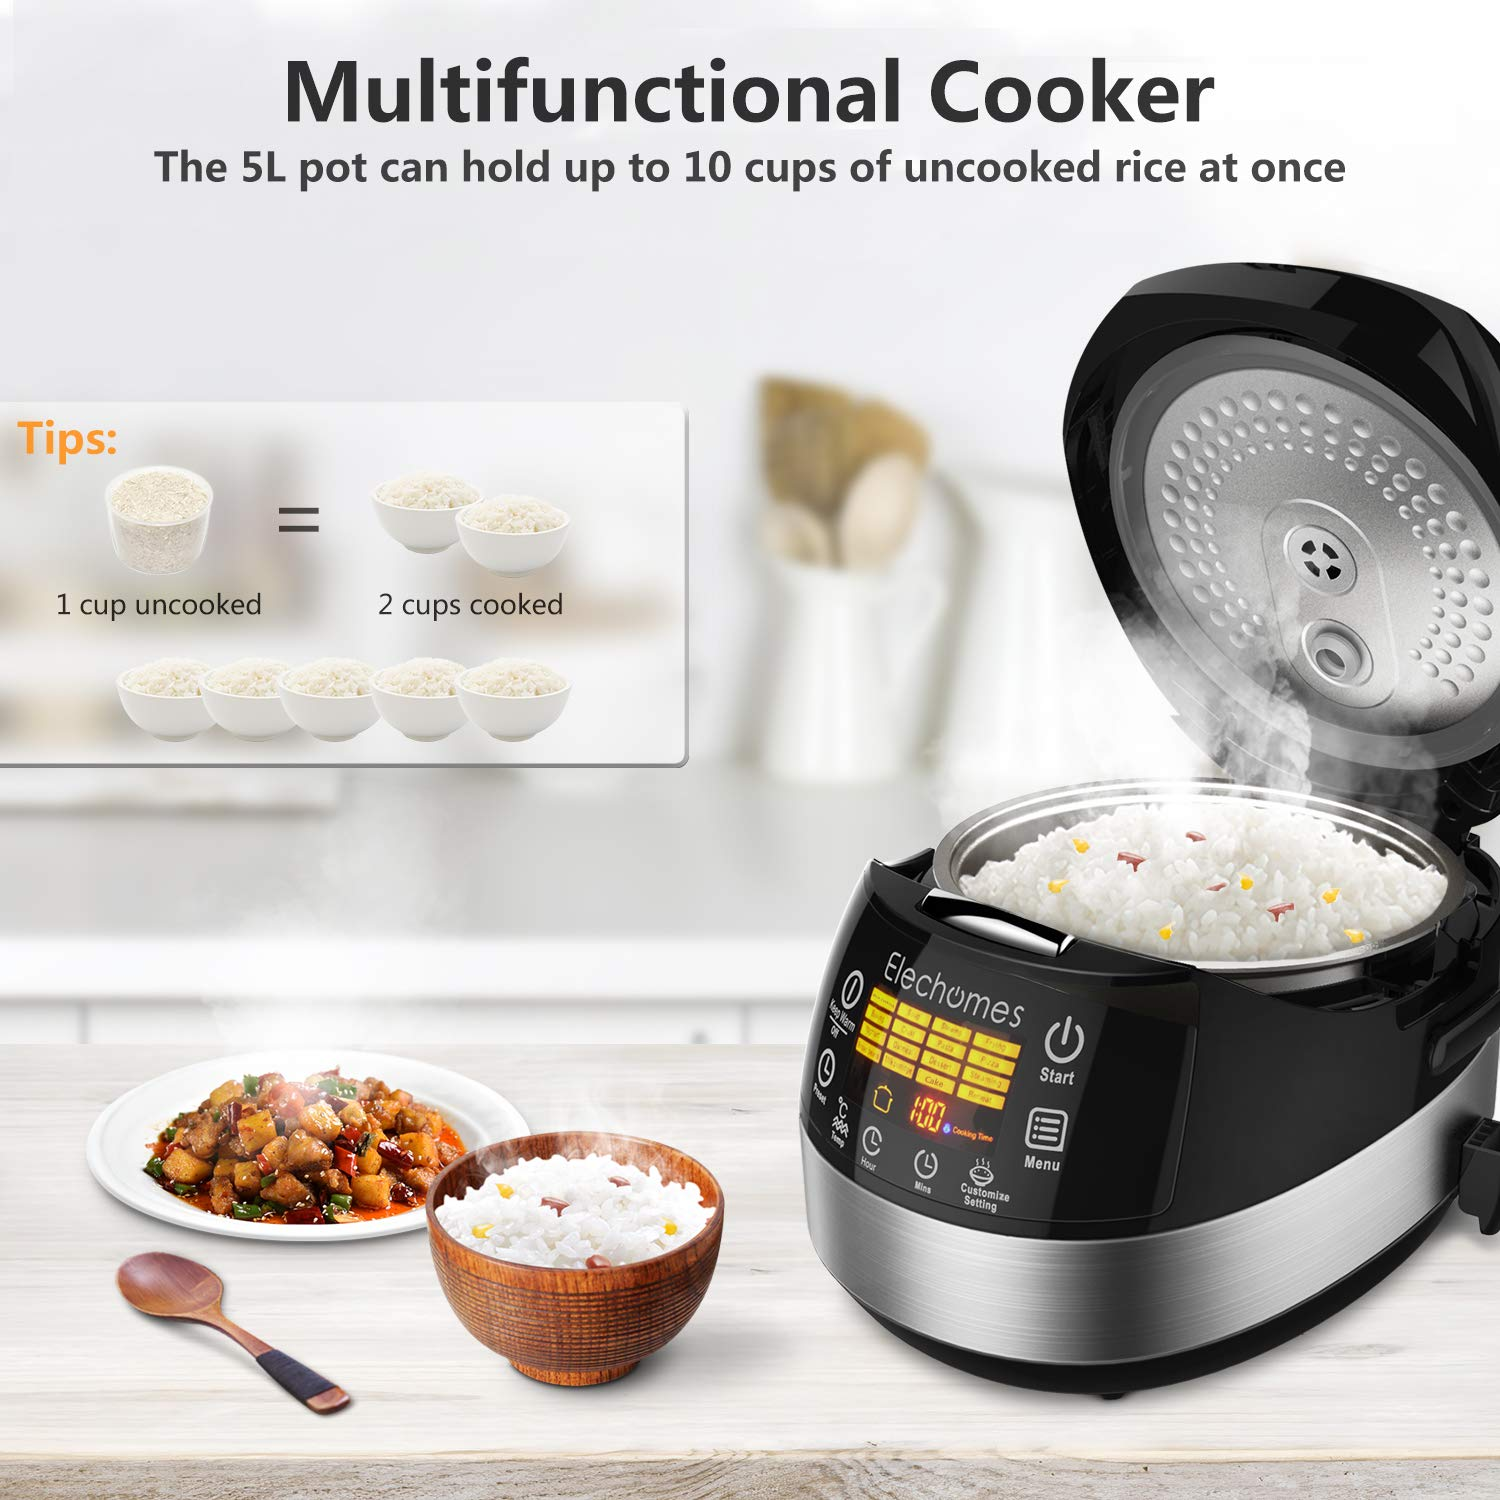 Elechomes LED Touch Control Rice Cooker, 16-in-1 Multi-function Cooker, 10-Cups Uncooked Warmer Cooker with Steam & Rinse Basket, CR502 by Elechomes (Image #4)